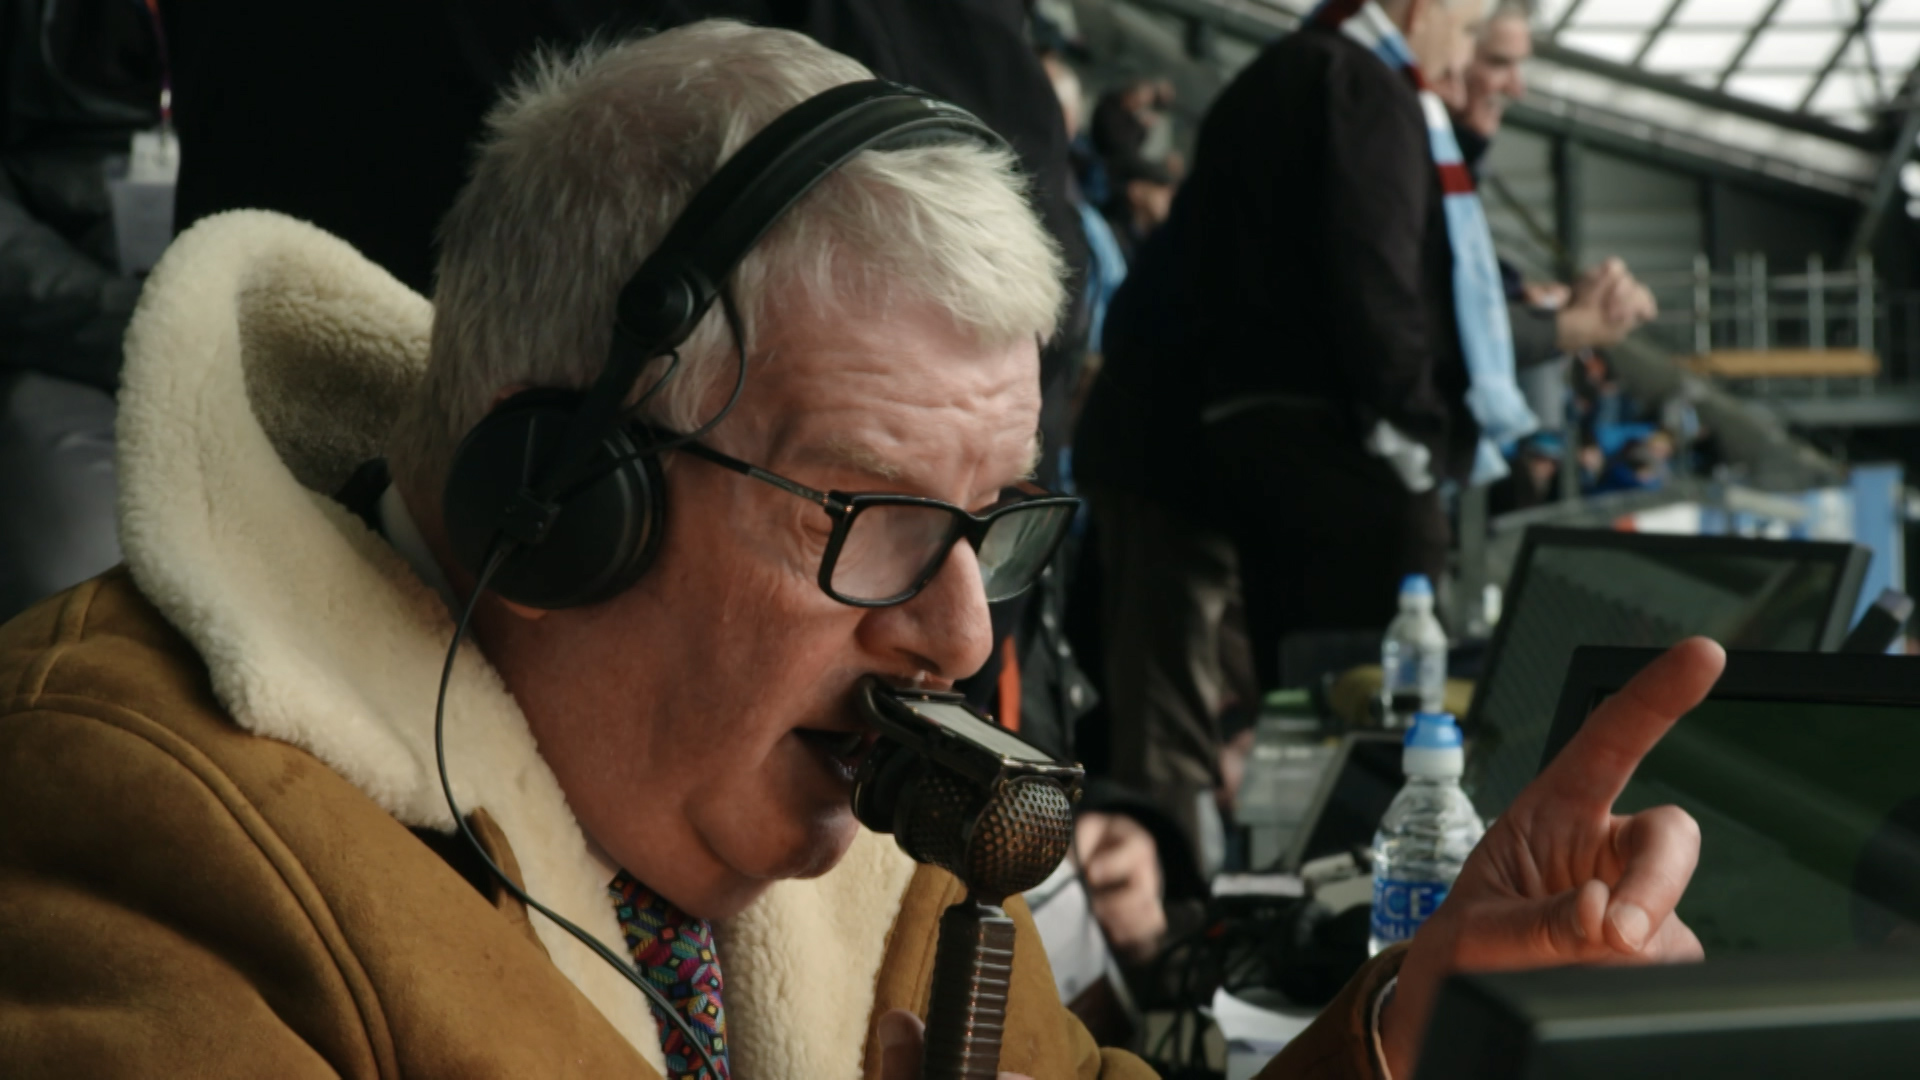 Motty: the man behind the sheepskin - Motson commentating with sheepskin jacket